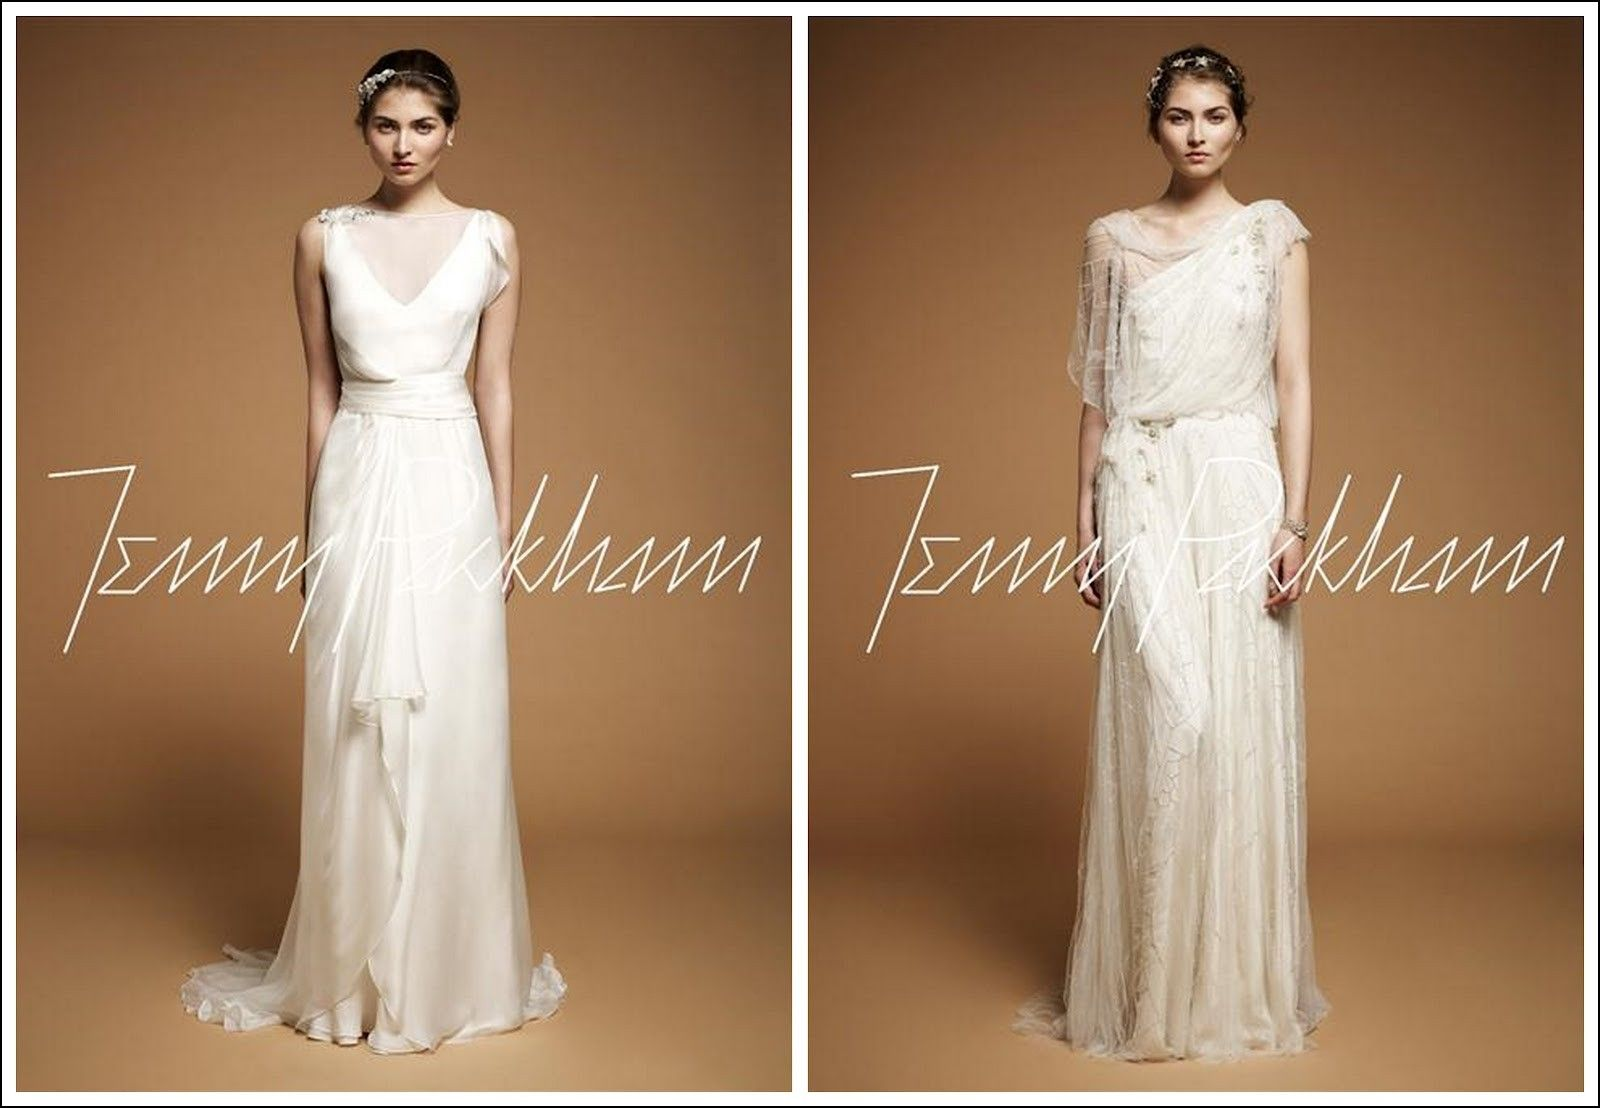 Jenny packham second hand wedding dresses wedding ideas jenny packham second hand wedding dresses ombrellifo Gallery